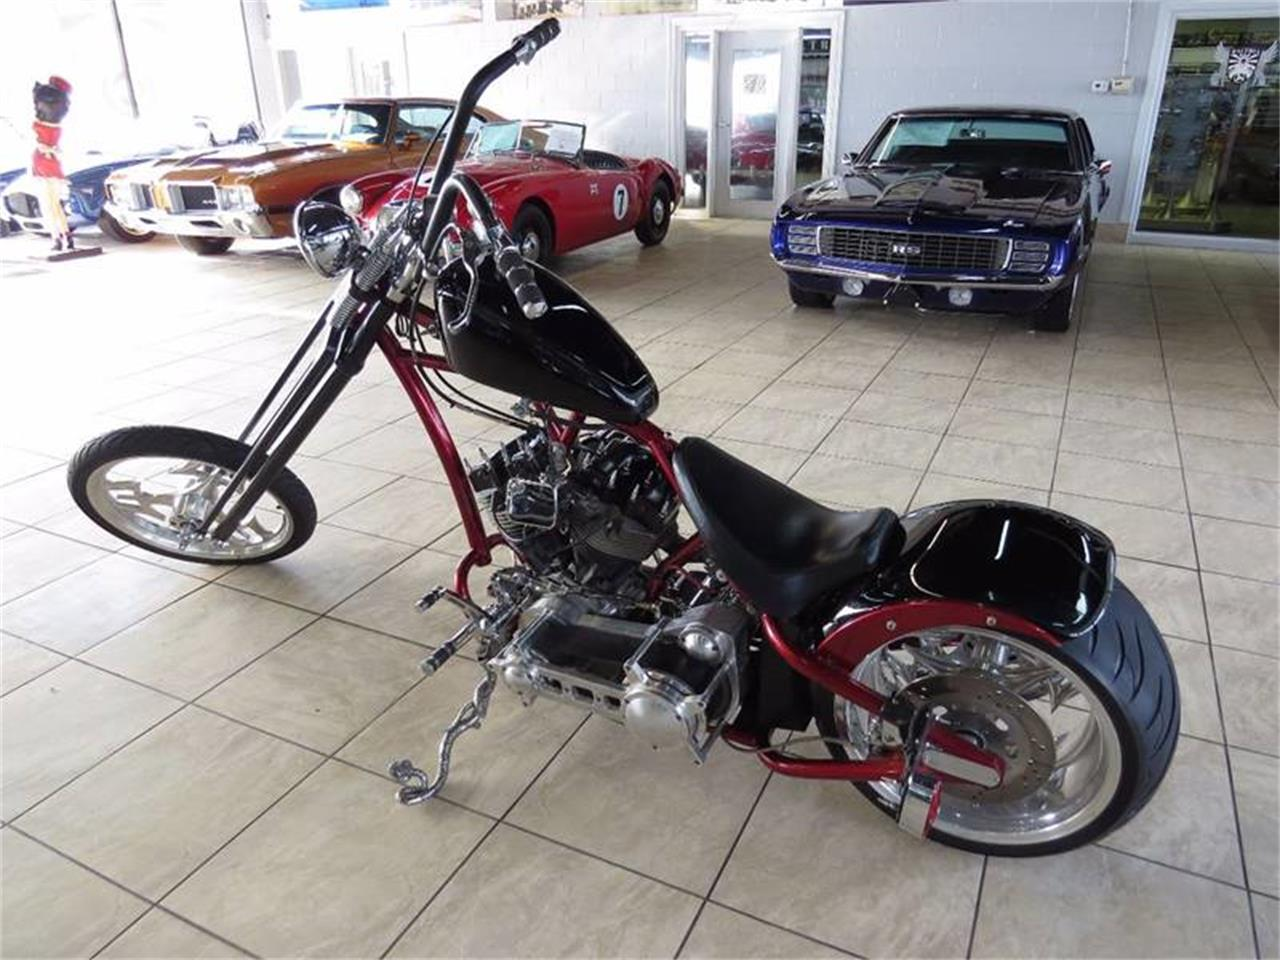 2012 Harley-Davidson Motorcycle for sale in St. Charles, IL – photo 7